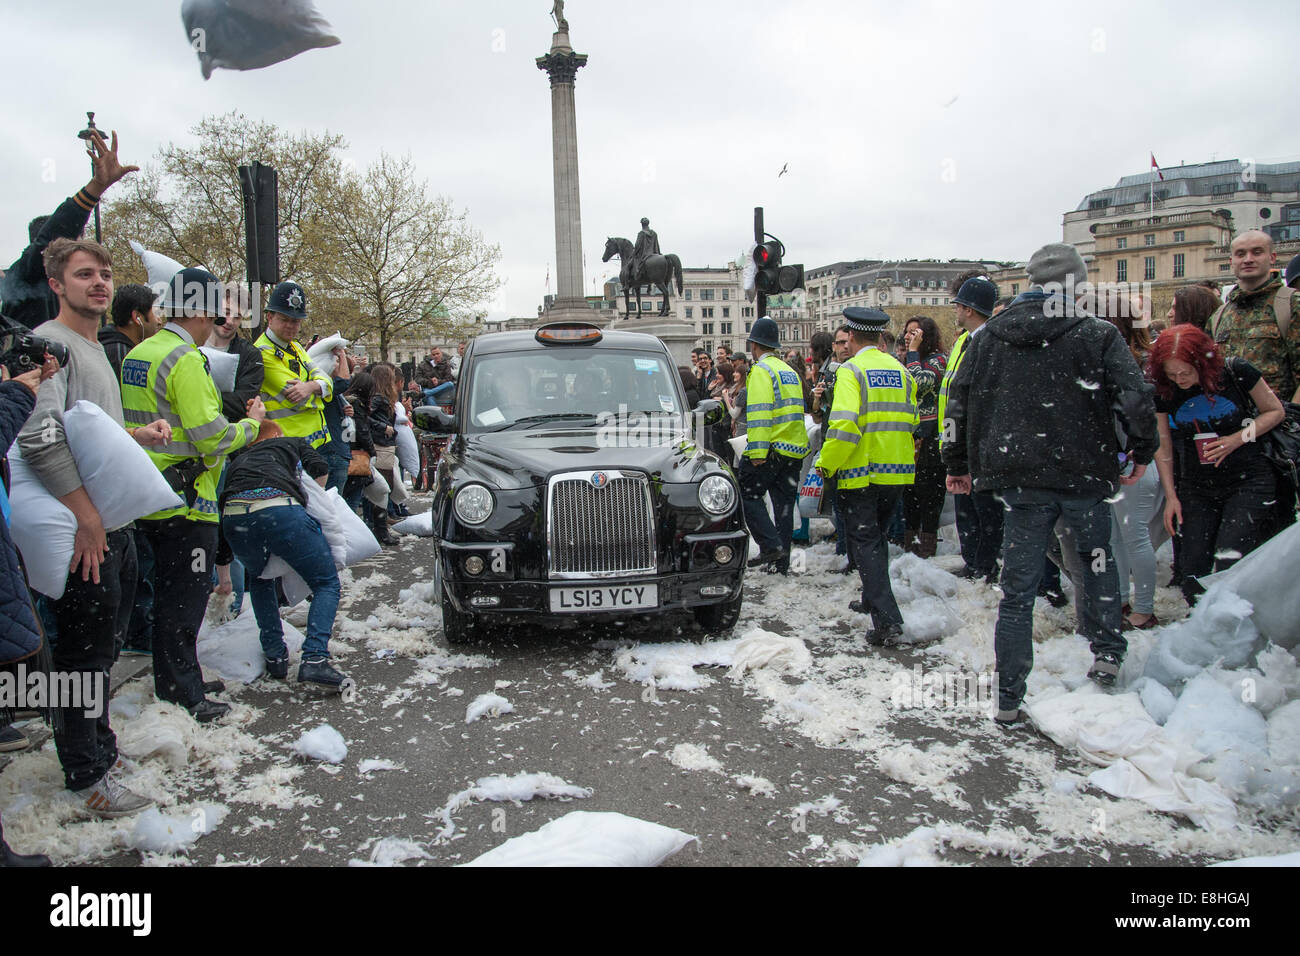 A taxi drives through the commotion as Londoners pillow fight in the street around Trafalgar Square during International - Stock Image